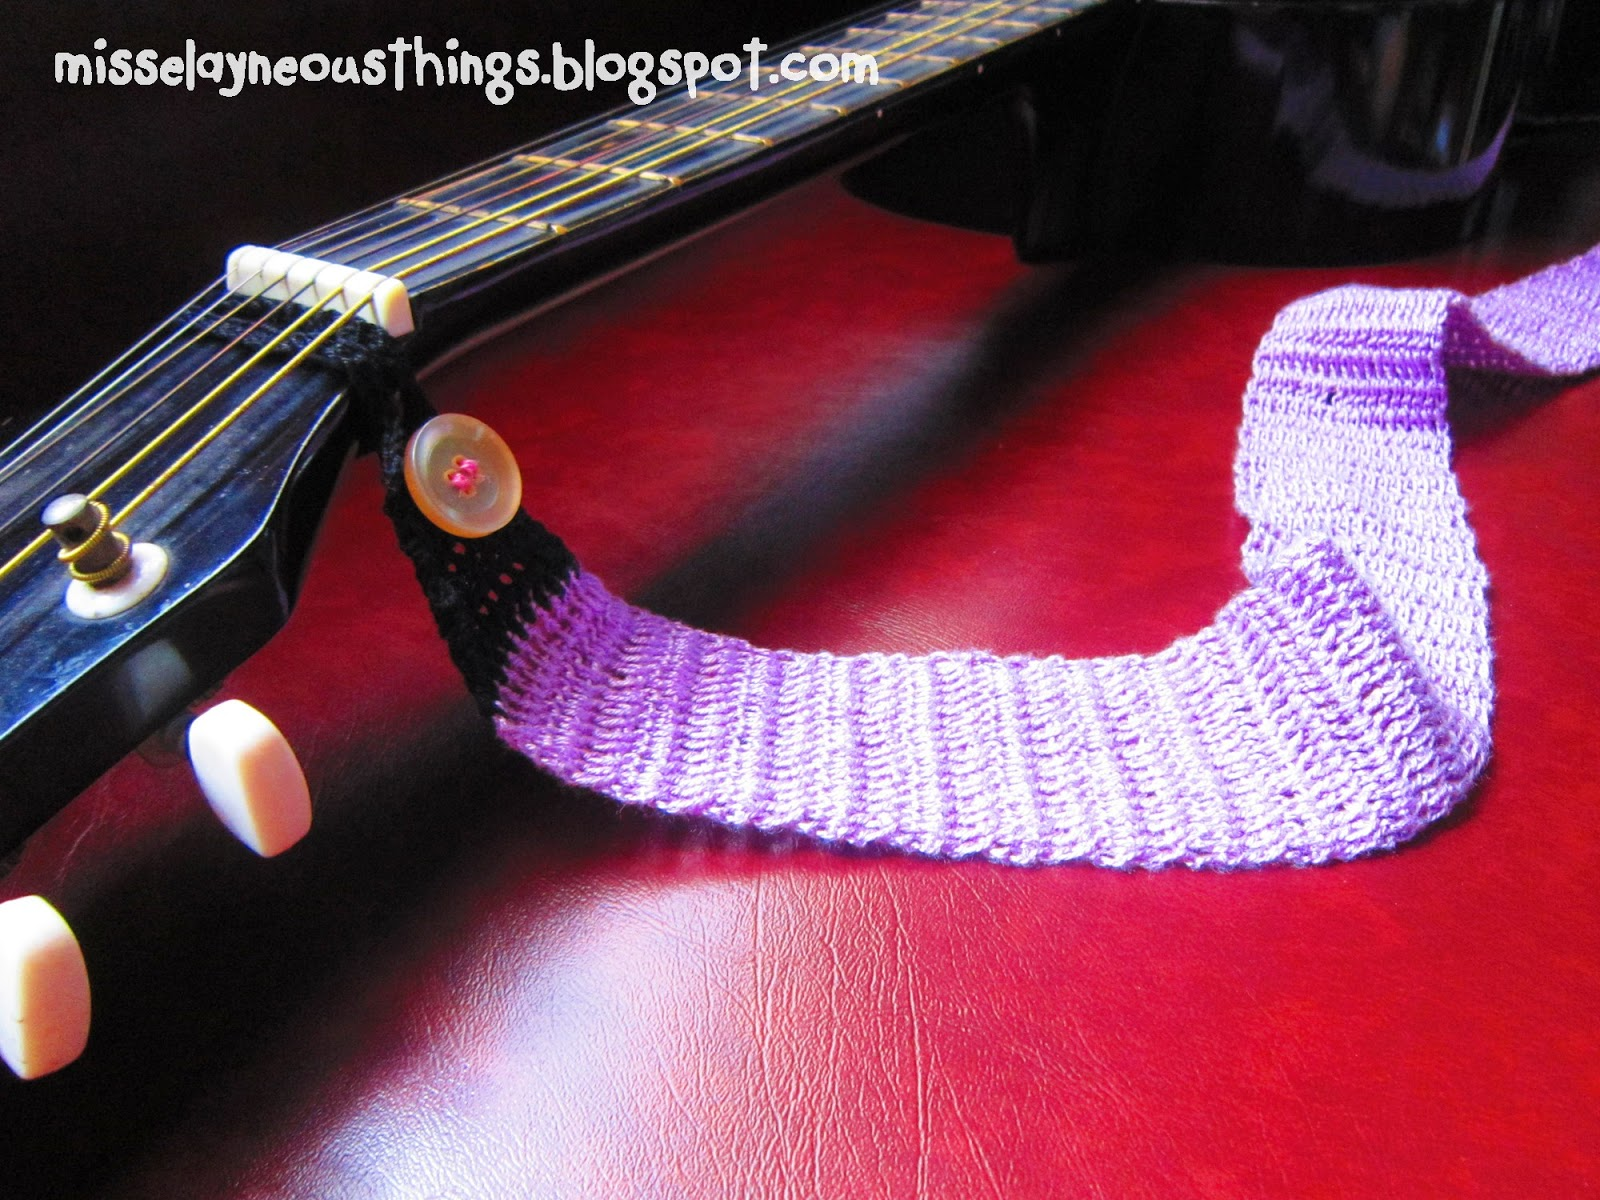 diy crochet your own guitar strap - a blog about misselayneous things